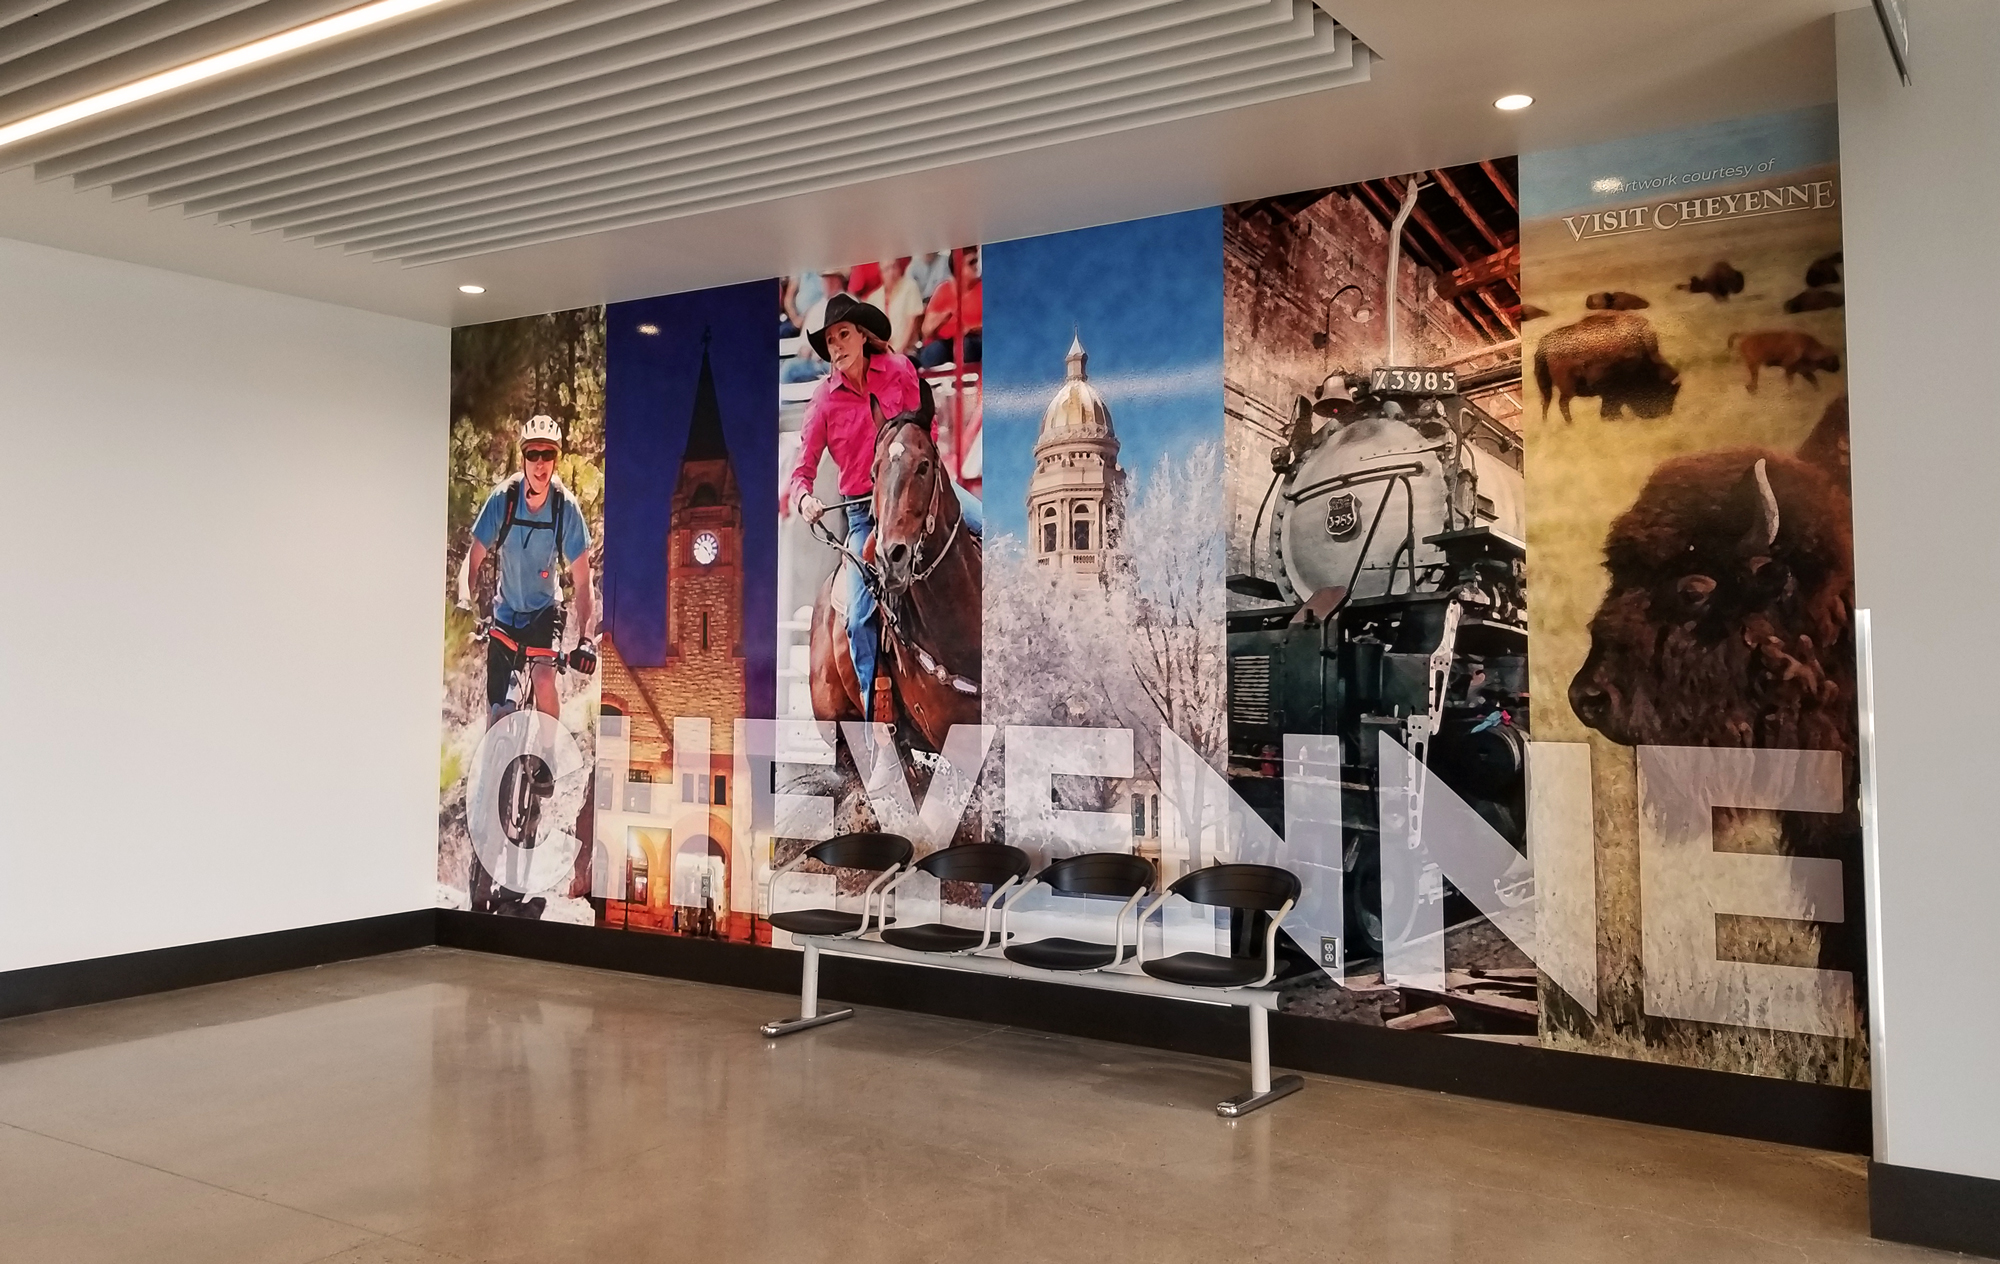 cheyenne airport wall graphic